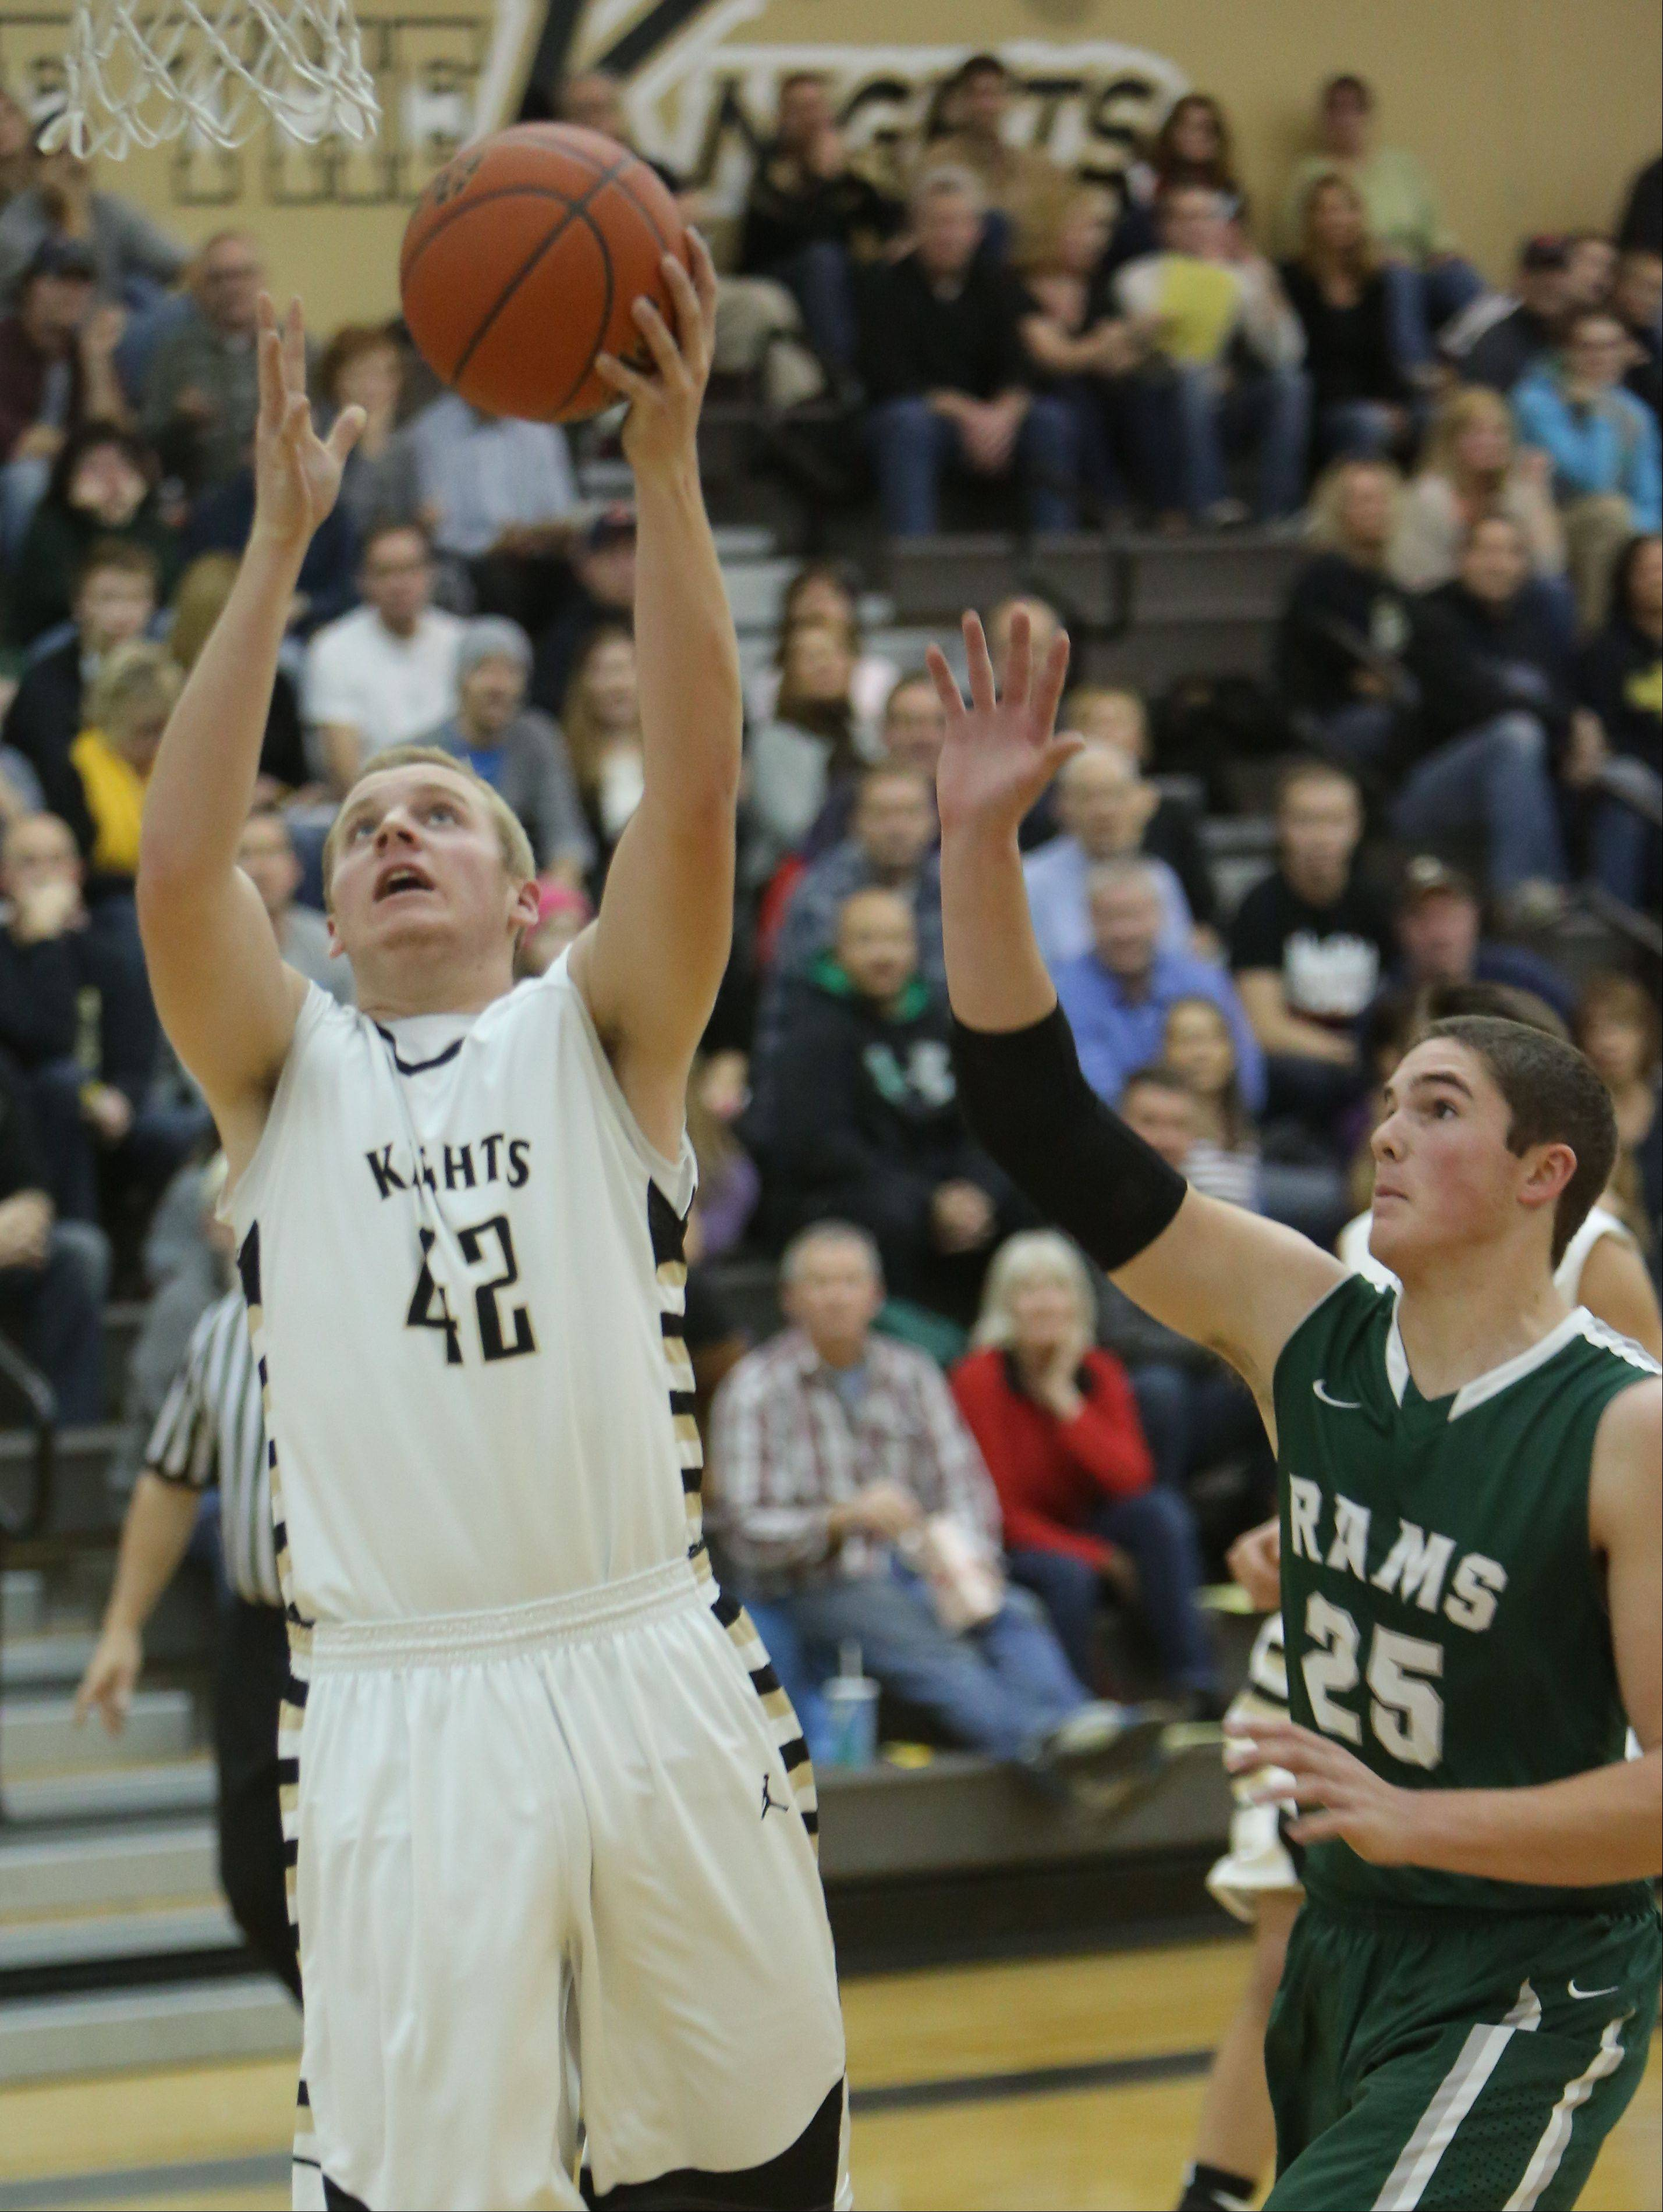 Images from the Grayslake North vs. Grayslake Central boys basketball game on Friday, Dec. 13.